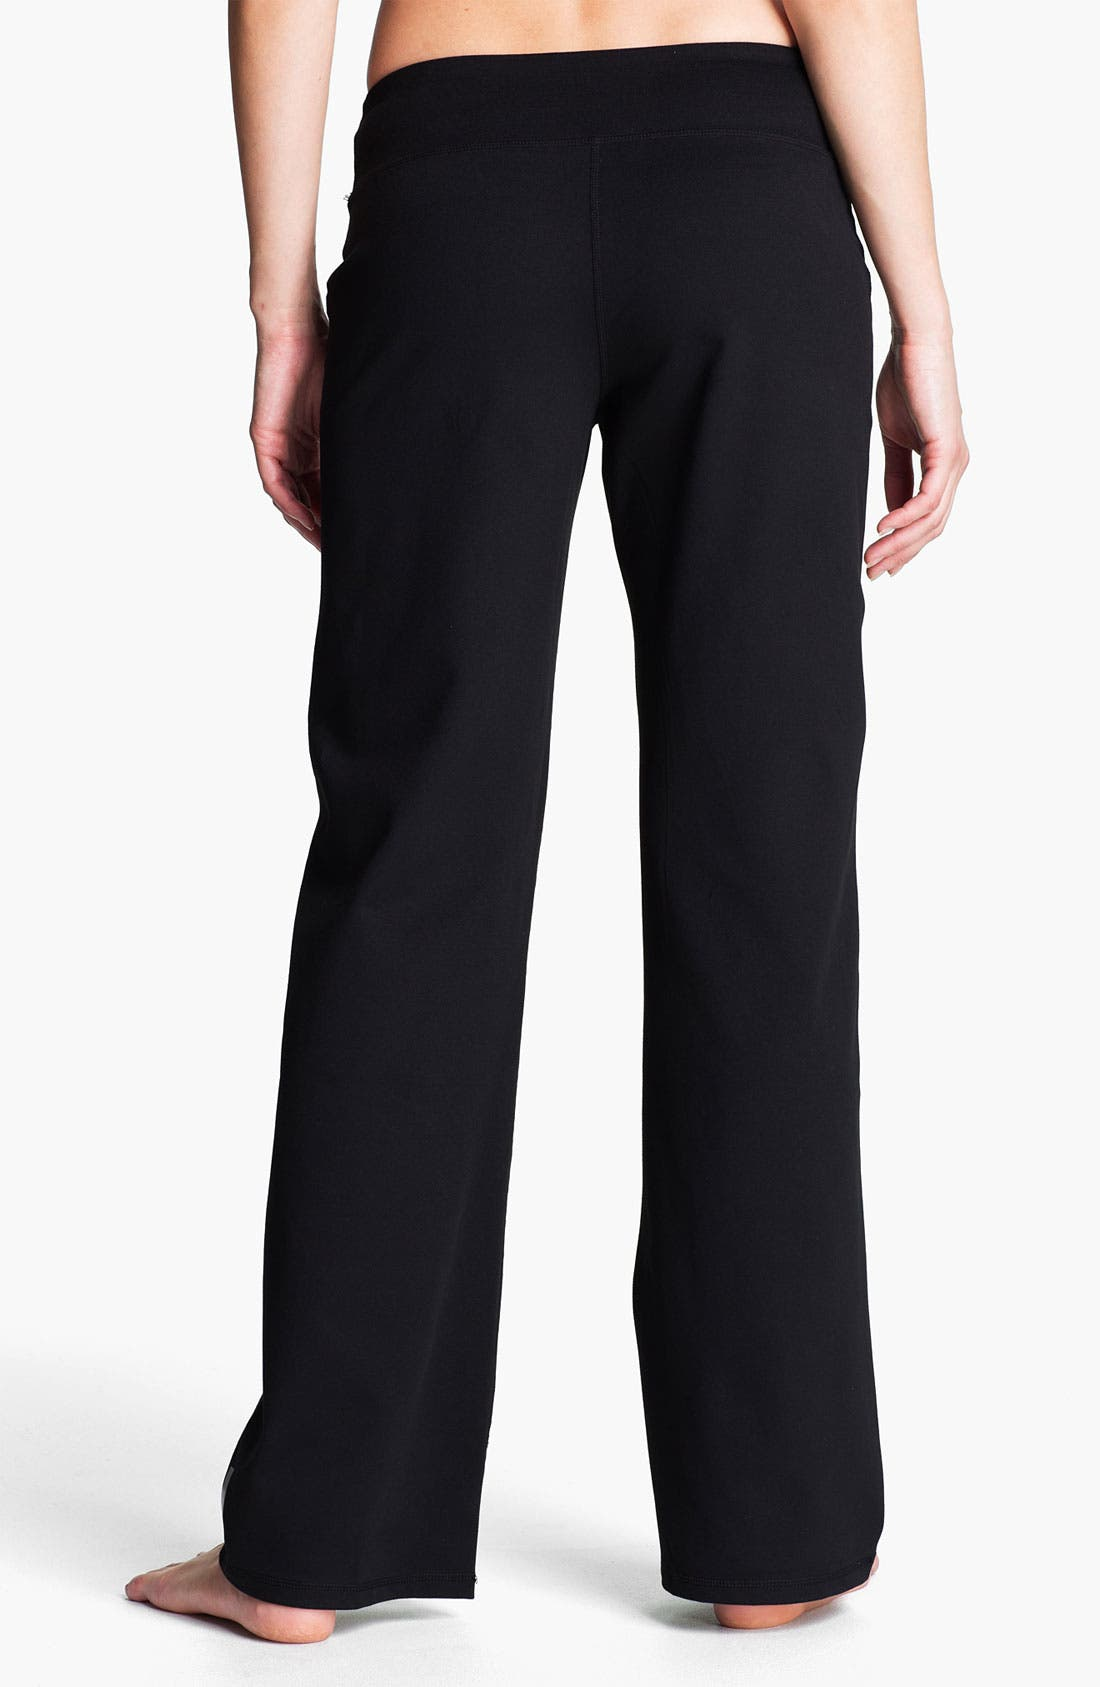 Alternate Image 2  - Zella 'Soul 2' Pants